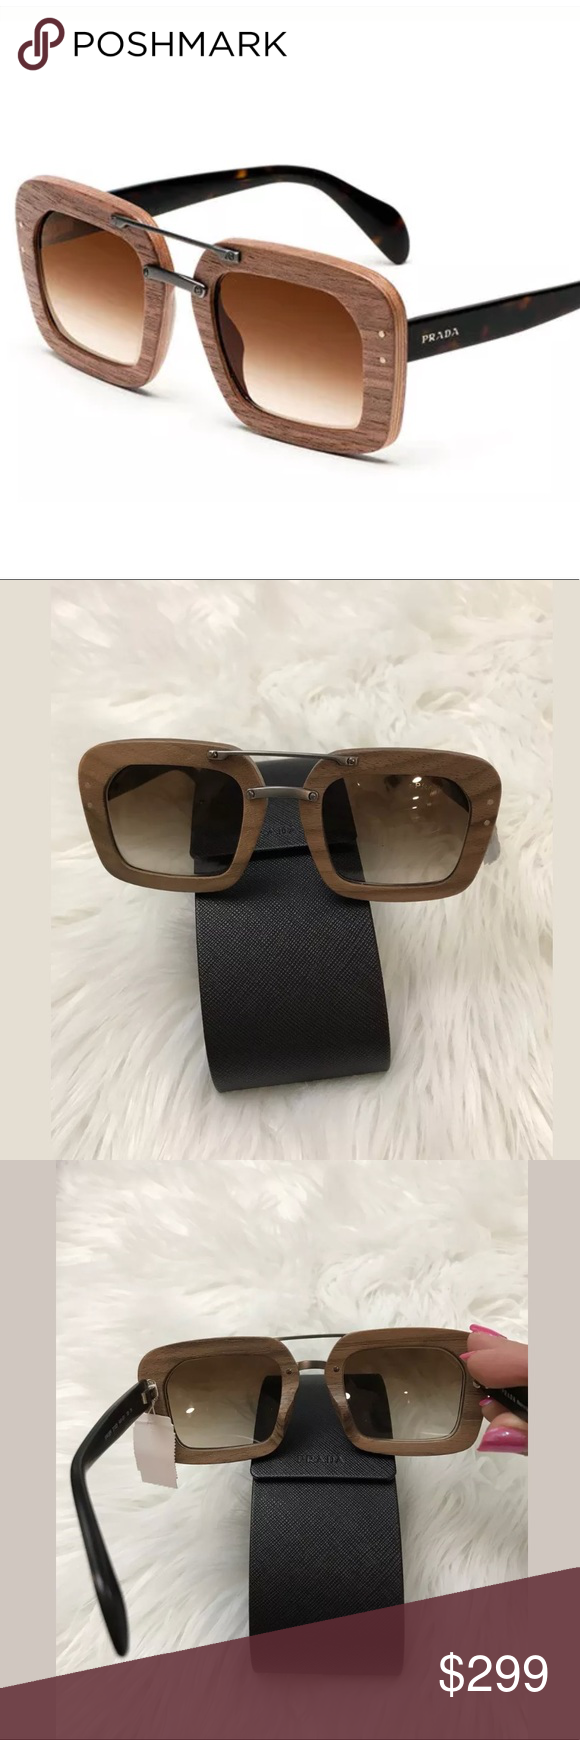 a5a1b4e18a8 Prada Wood Frame Sunglasses Style 0PR-30RSF 100% Authentic. Please see all  photos